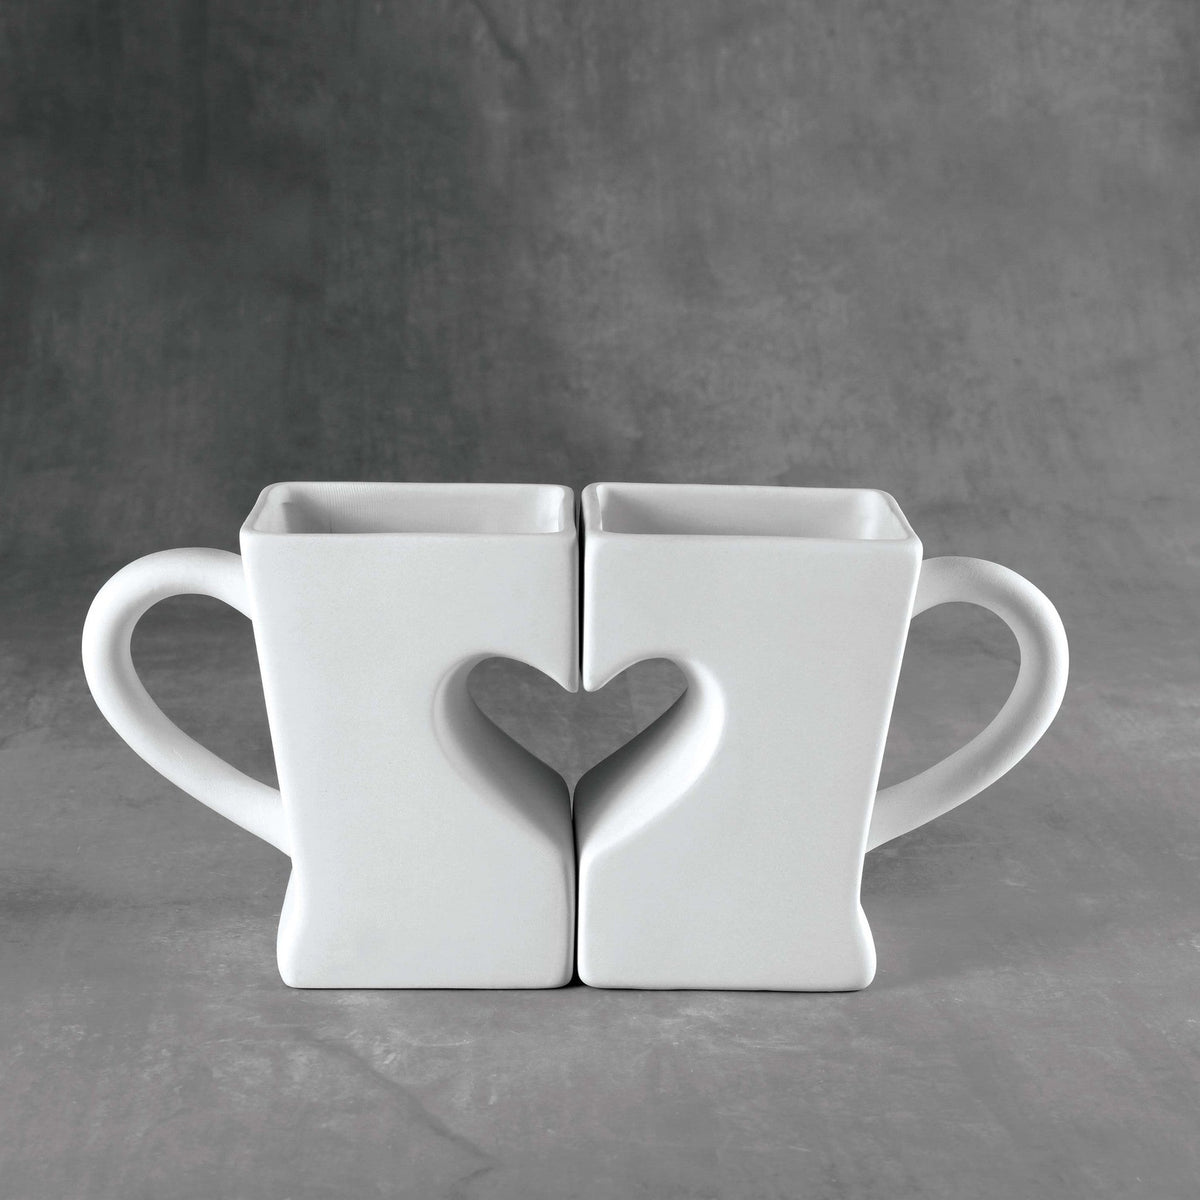 Duncan - 37093 Bisque Two Become One Mug - Sounding Stone